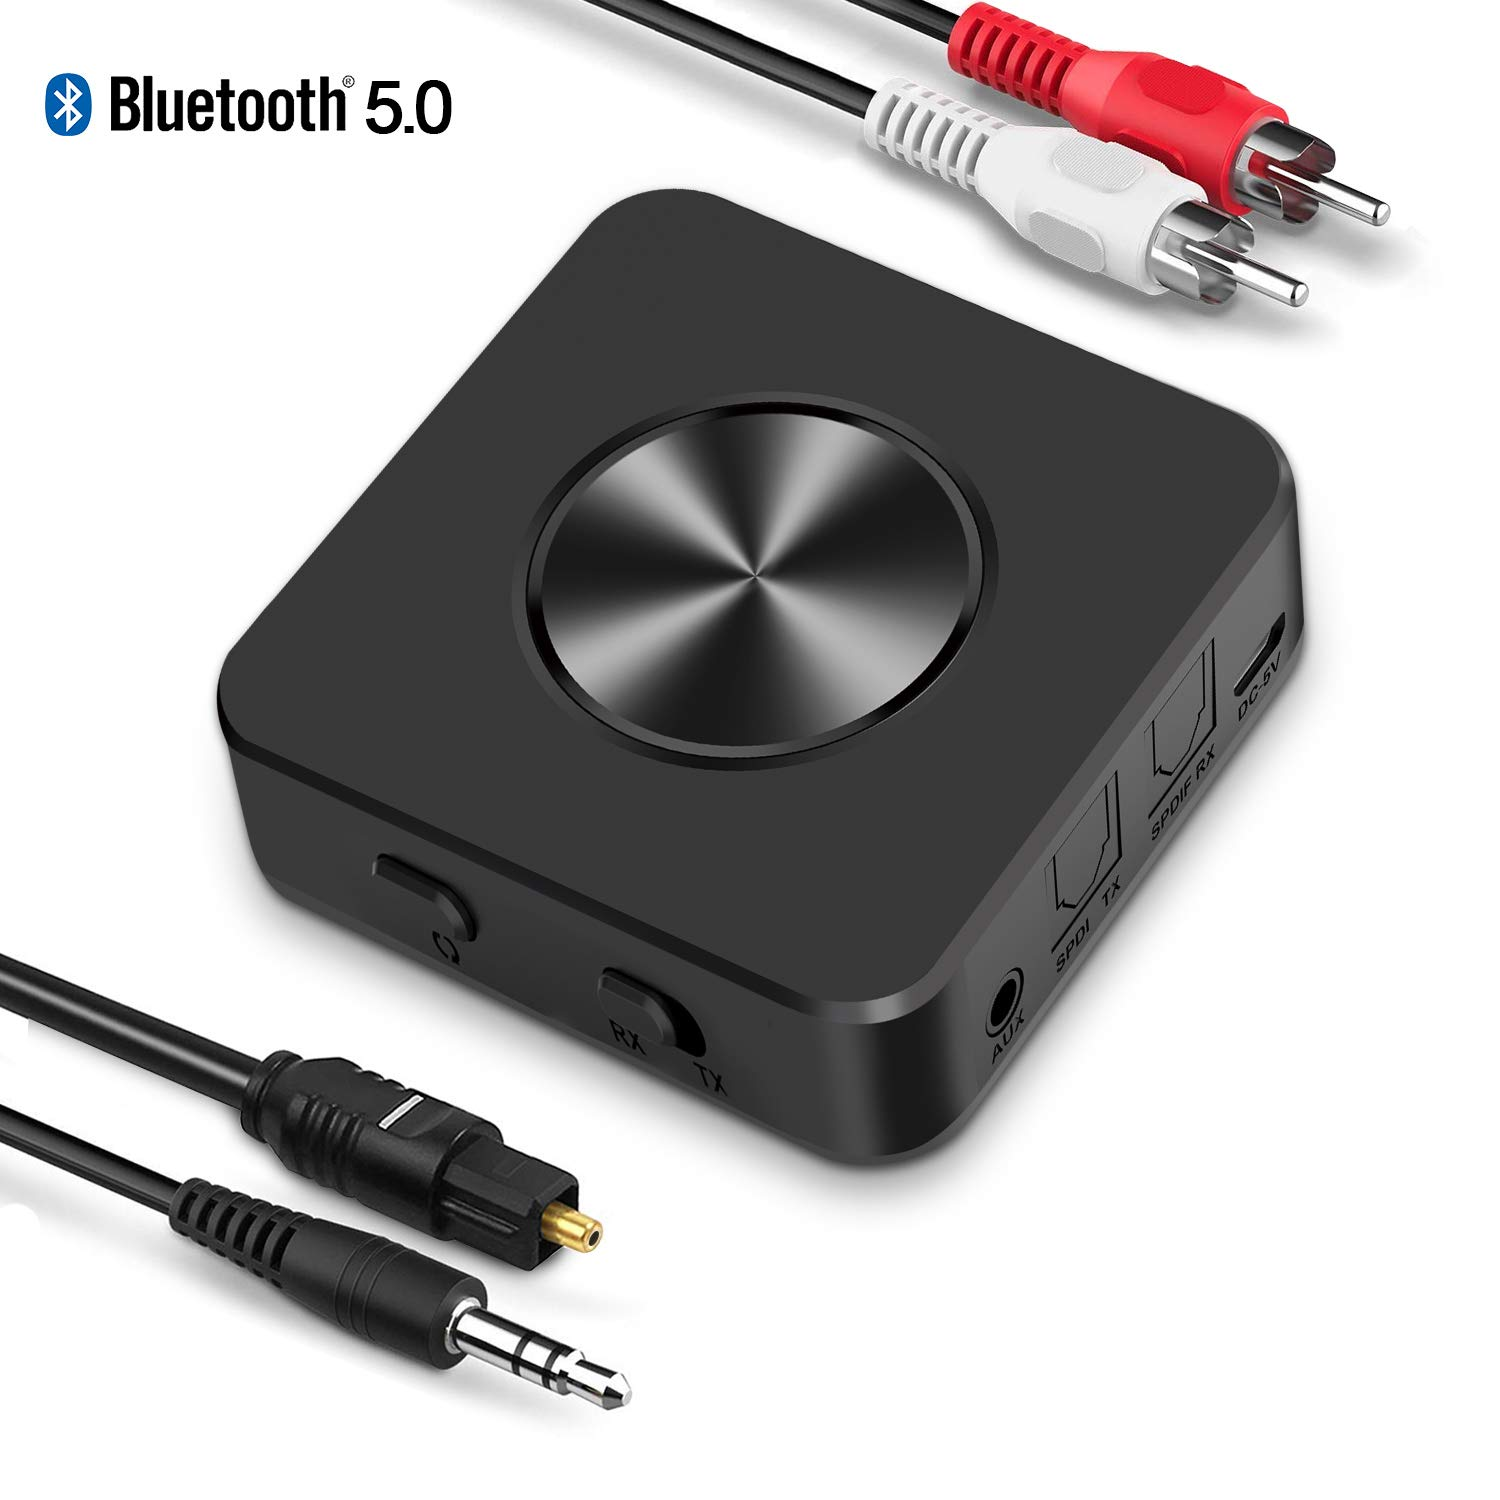 Bluetooth 5.0 Transmitter Receiver for TV BTMAGIC AptX Low Latency Wireless Audio Adapter for Home Stereo Speakers PC Headphones (3.5mm AUX, RCA,Optical, USB), Dual Link by BTMAGIC